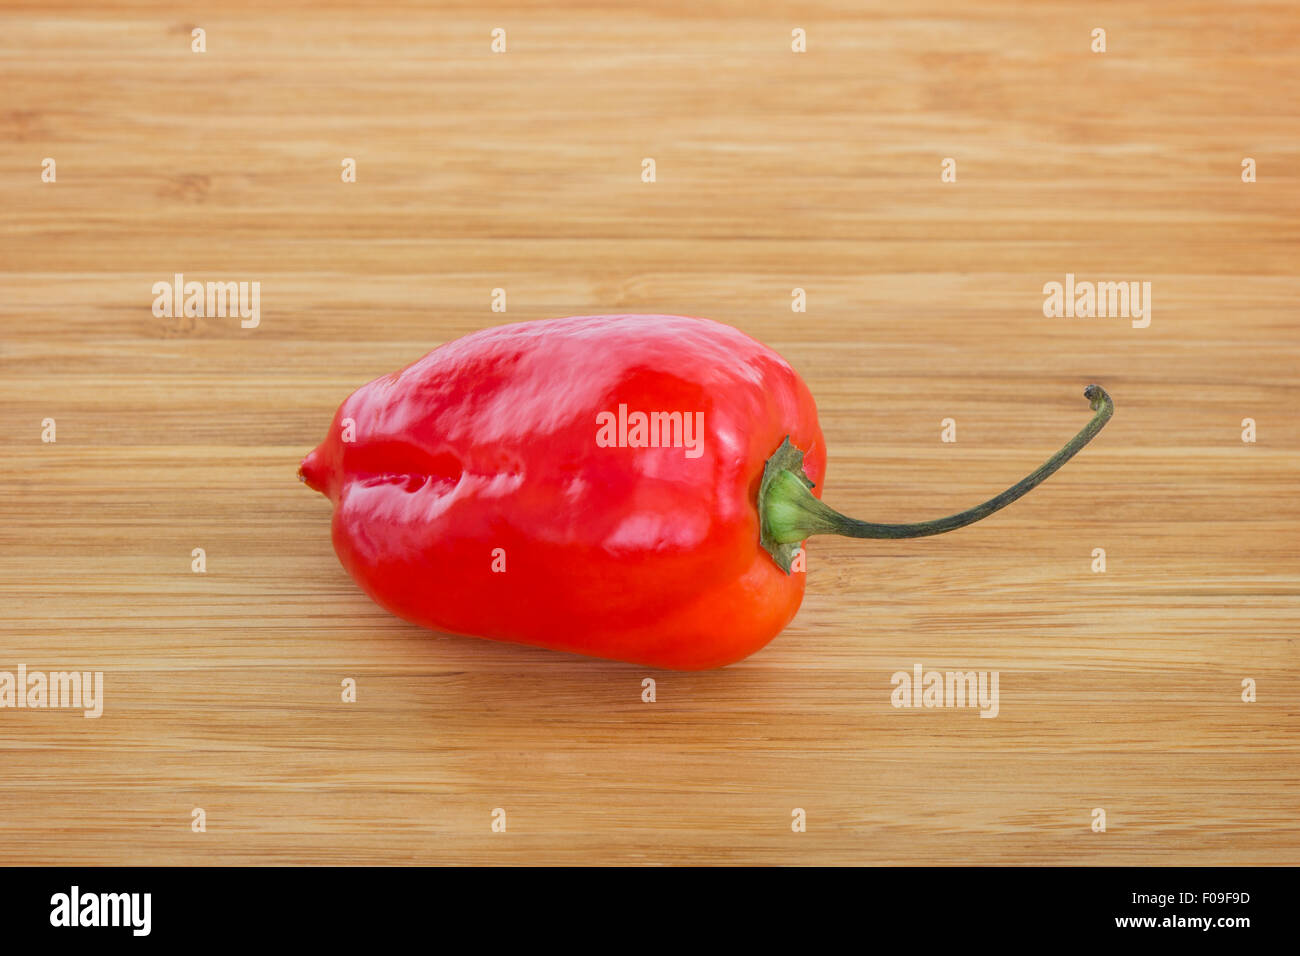 Close-up of a whole ripe red habanero chili on a wooden chopping board. Stock Photo